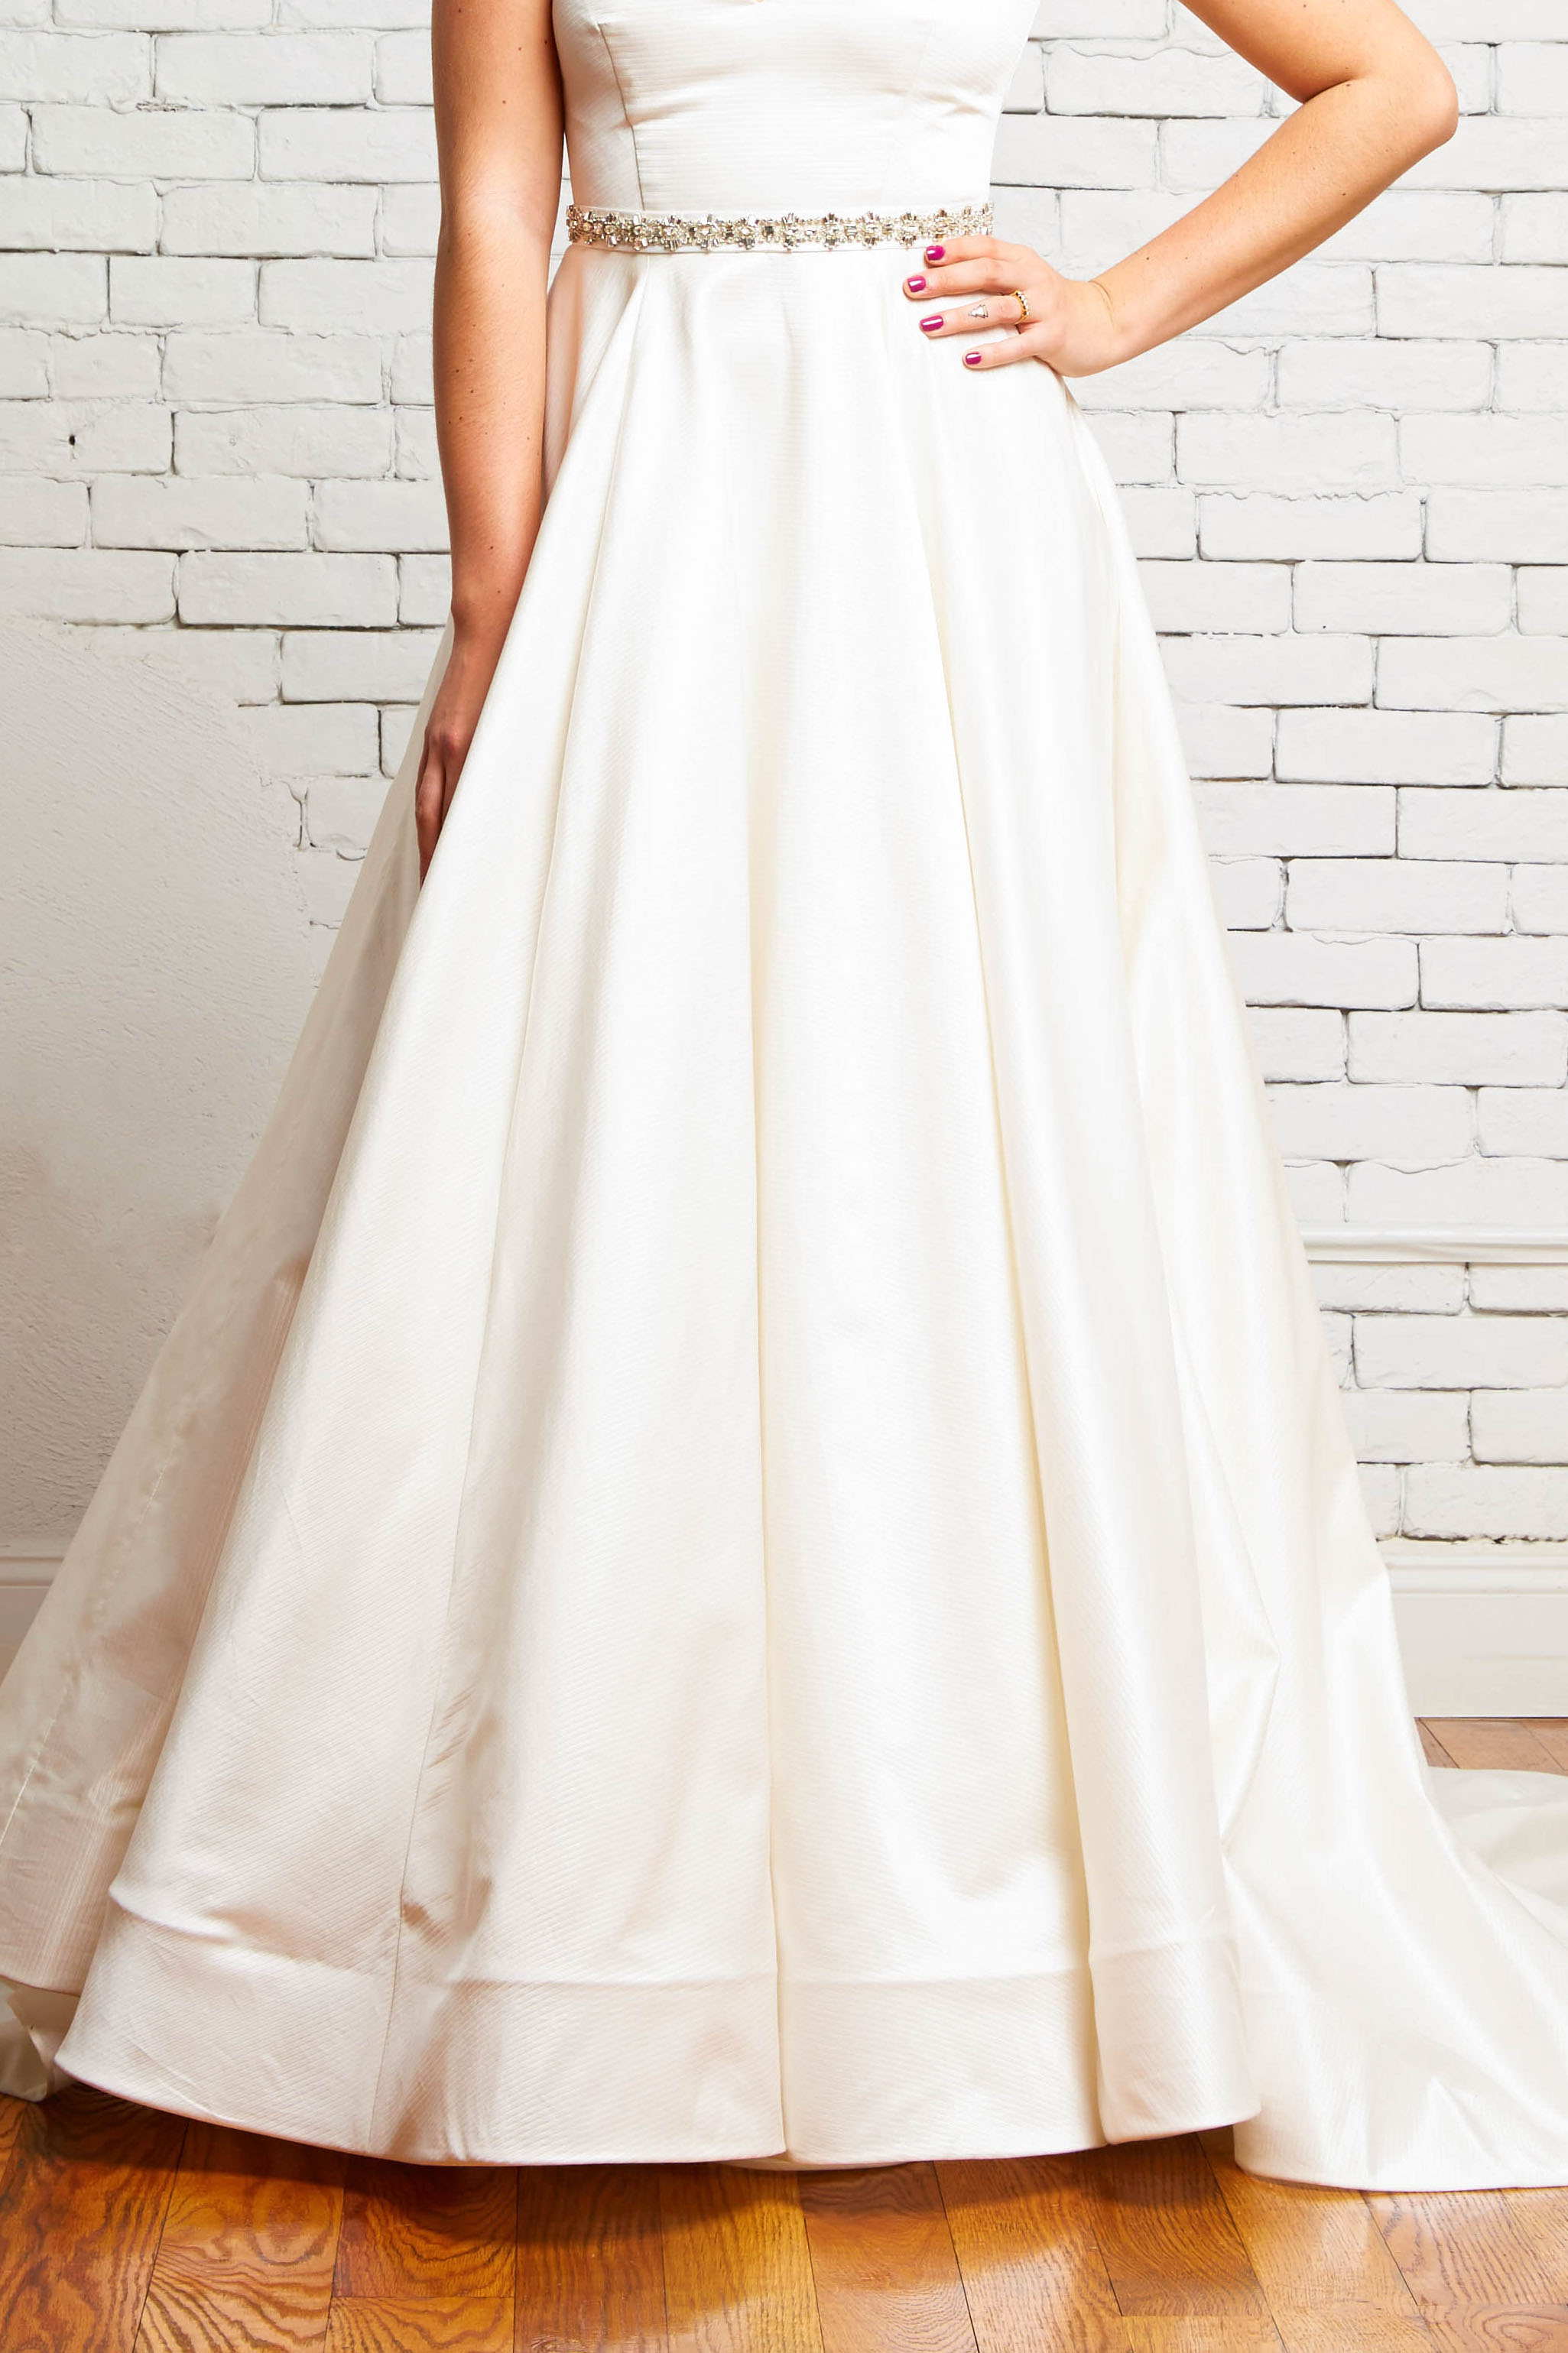 10C London Skirt Front-Rebecca Schoneveld-Modern_Ballgown_Wedding_Satin_Texture_Skirt.jpg